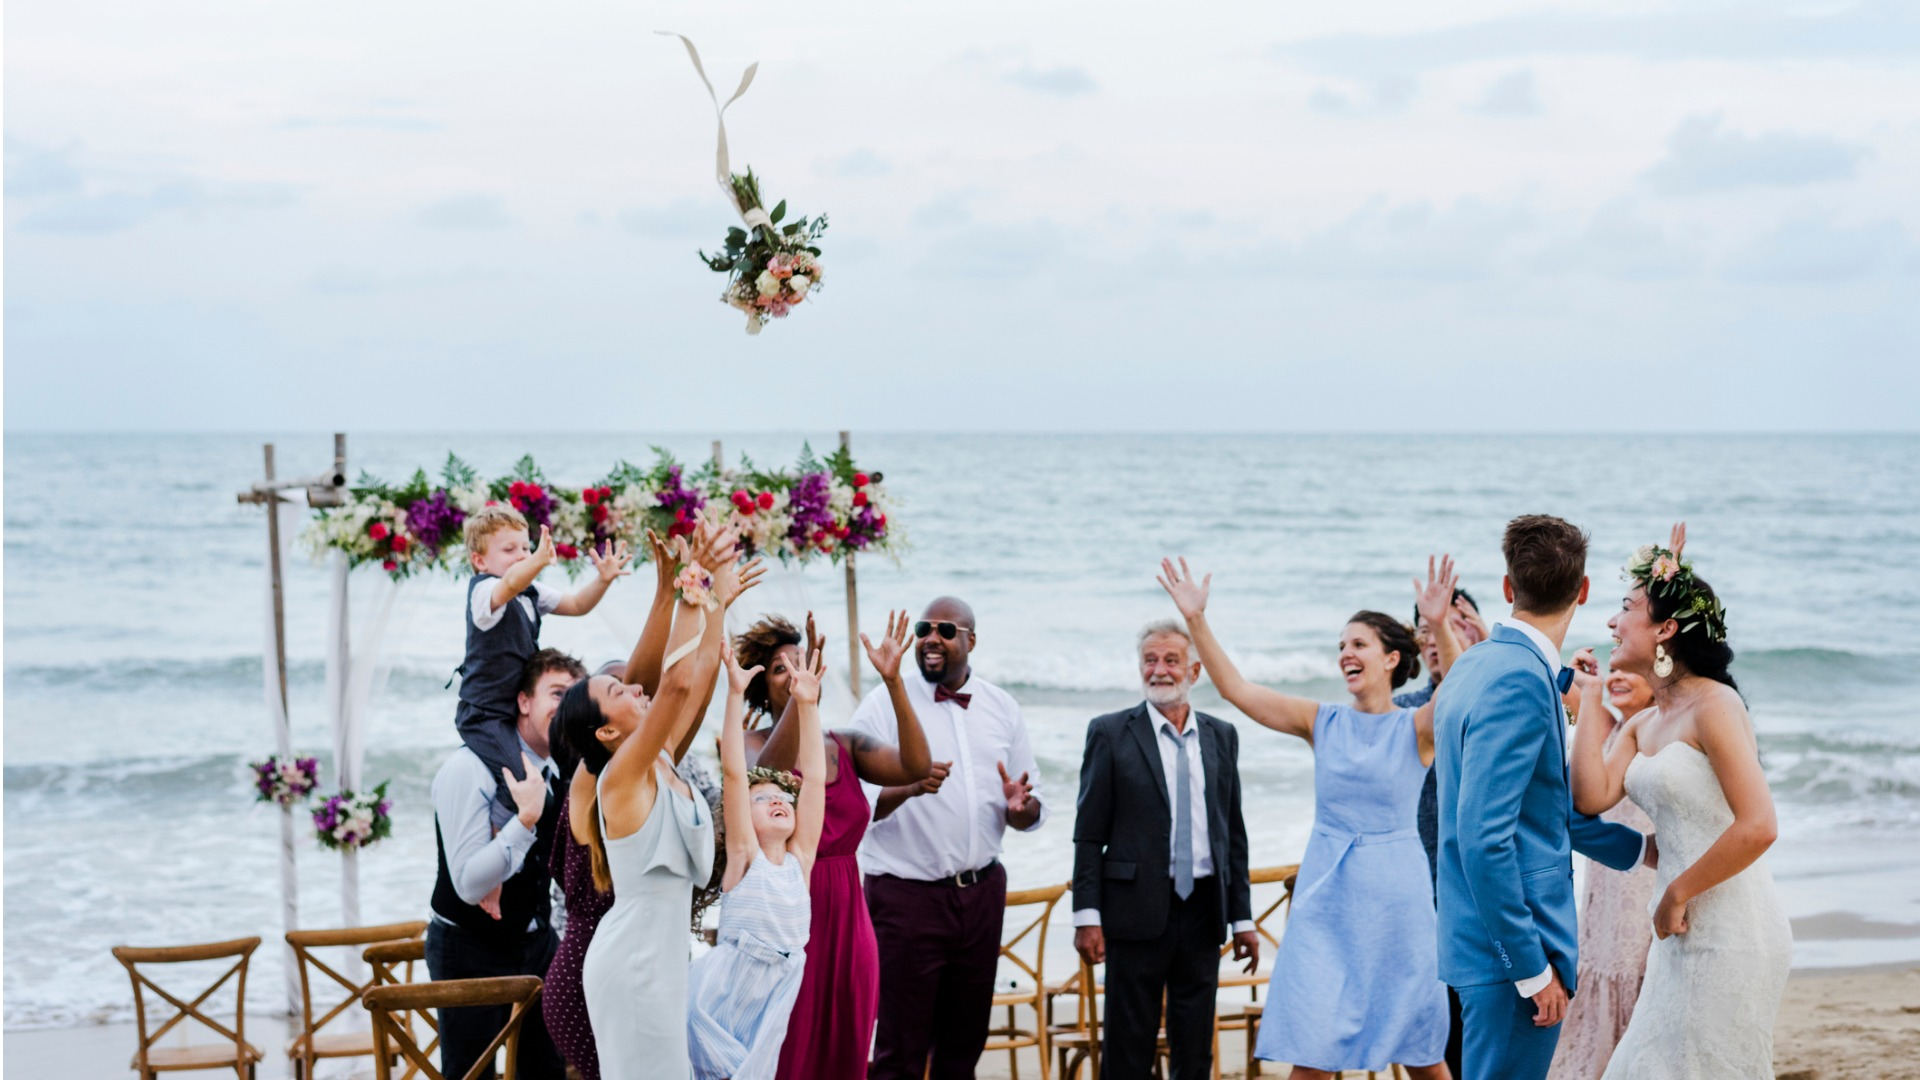 Useful Beach Wedding Ideas That Have Us Dreaming of Summer Time